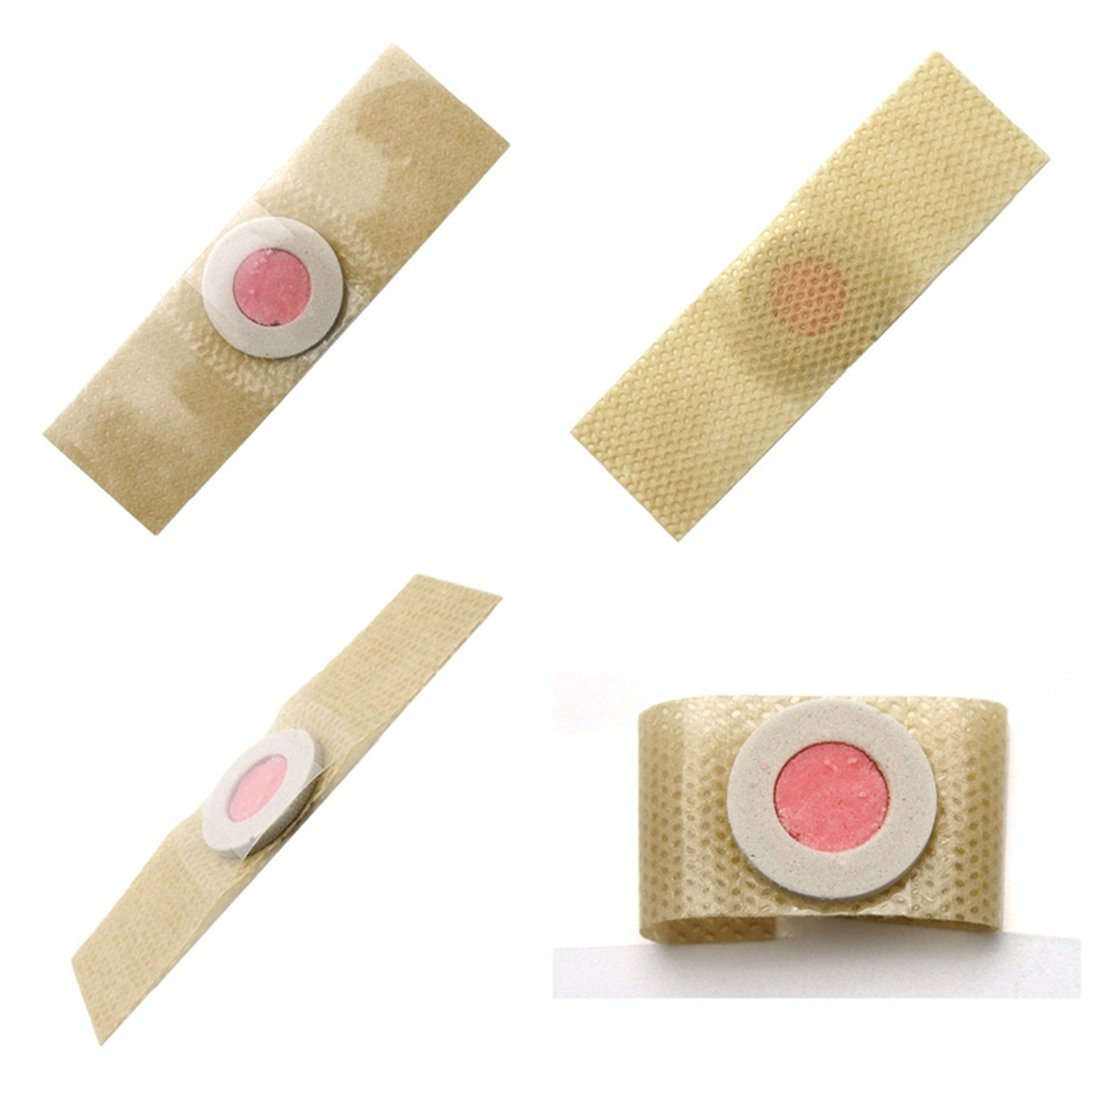 COOCLE Corn Removal Patch, Foot Corn Removal Calluses Pads, Salicylic Acid Relaxation Pain Relief Feet Massager